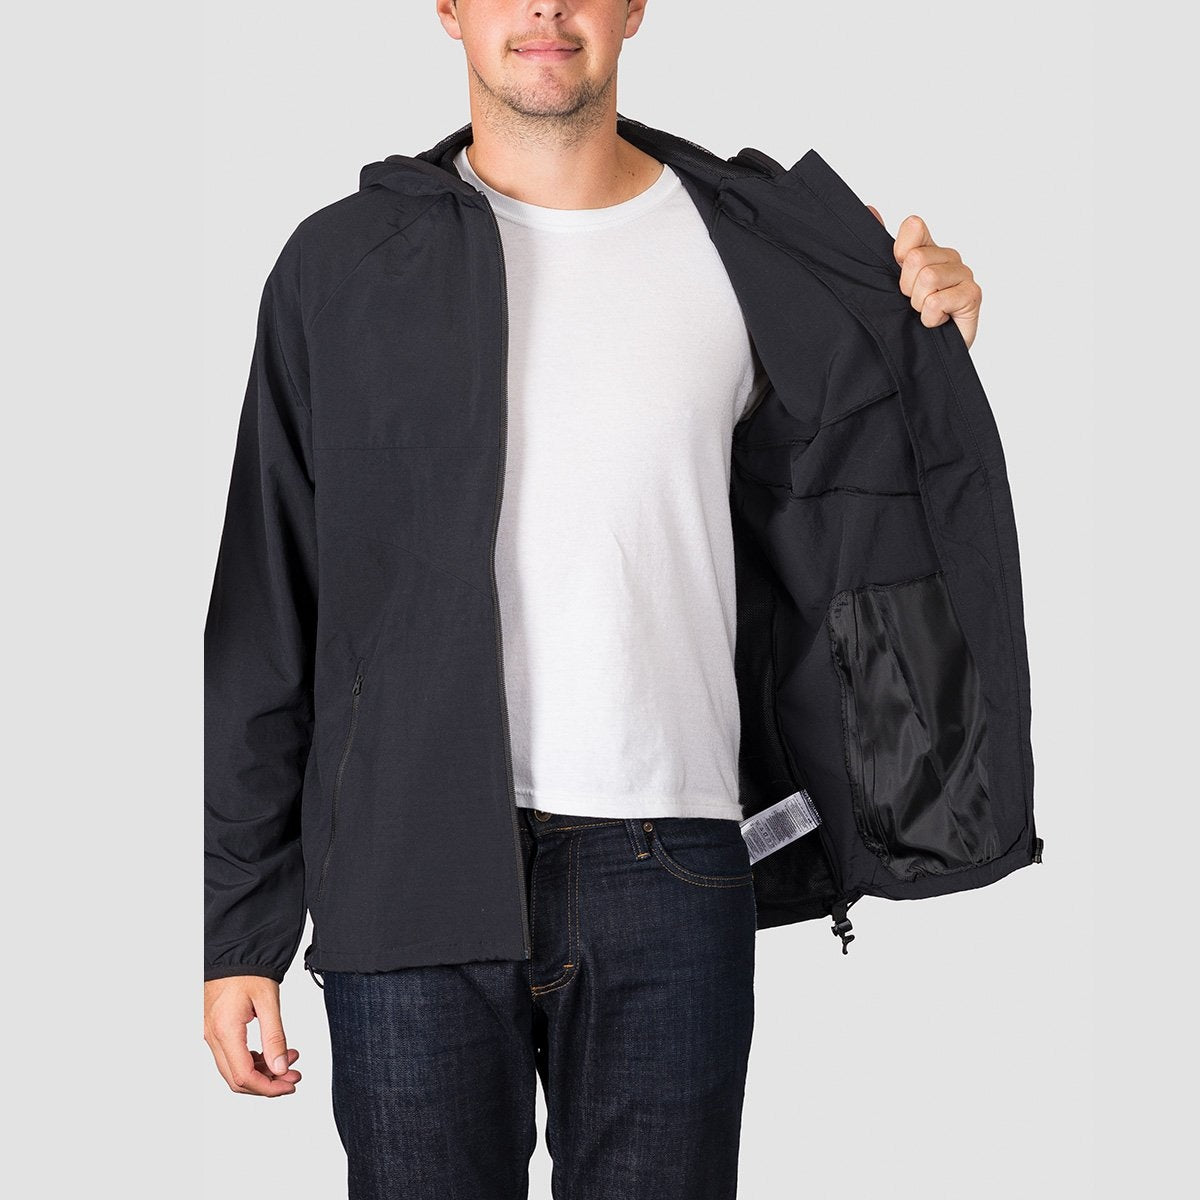 adidas Dekum Packable Wind Jacket Black/Black - Clothing